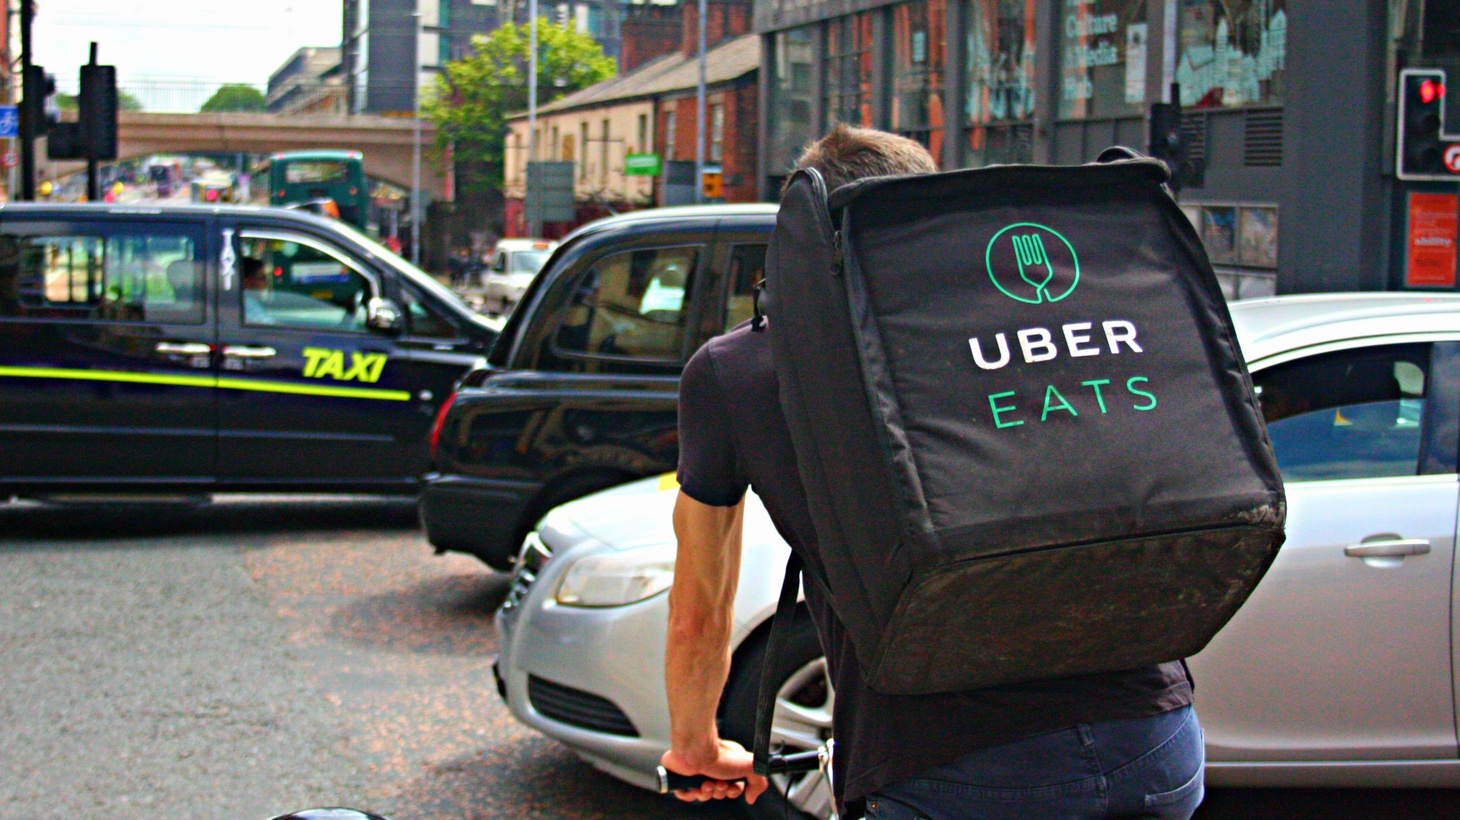 An Uber Eats food delivery driver cycles along a very busy Oxford Road in Manchester. One of a growing number of delivery riders for Uber's food delivery service as demand in Manchester increases.